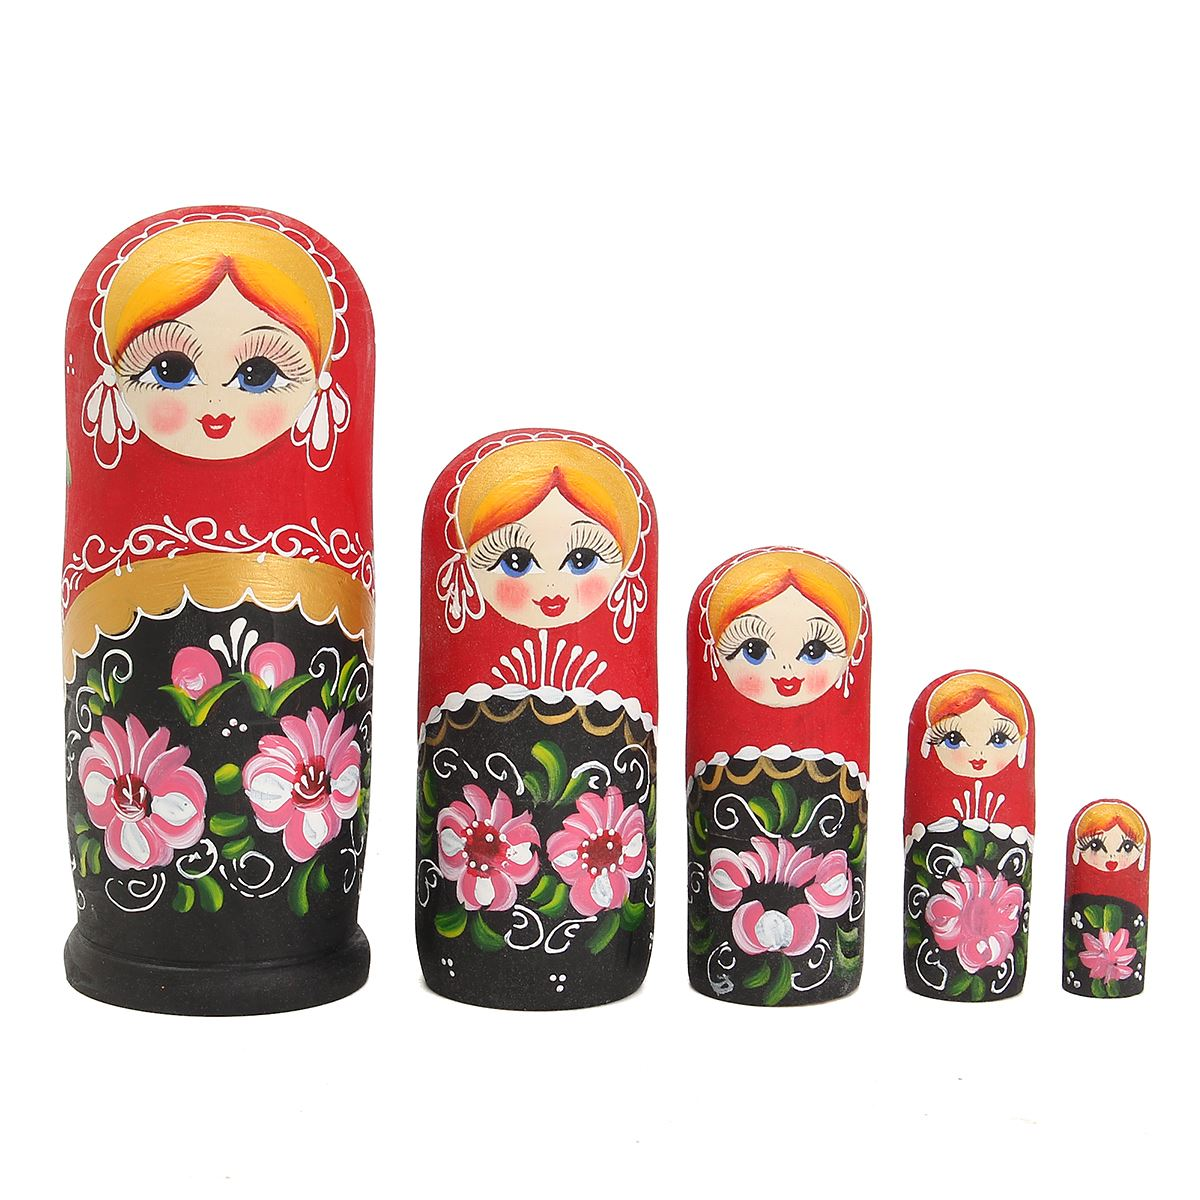 New 5pcs/Set Wooden Dolls Martyoshka Nesting Russian Bbushka Toys Gift Flower